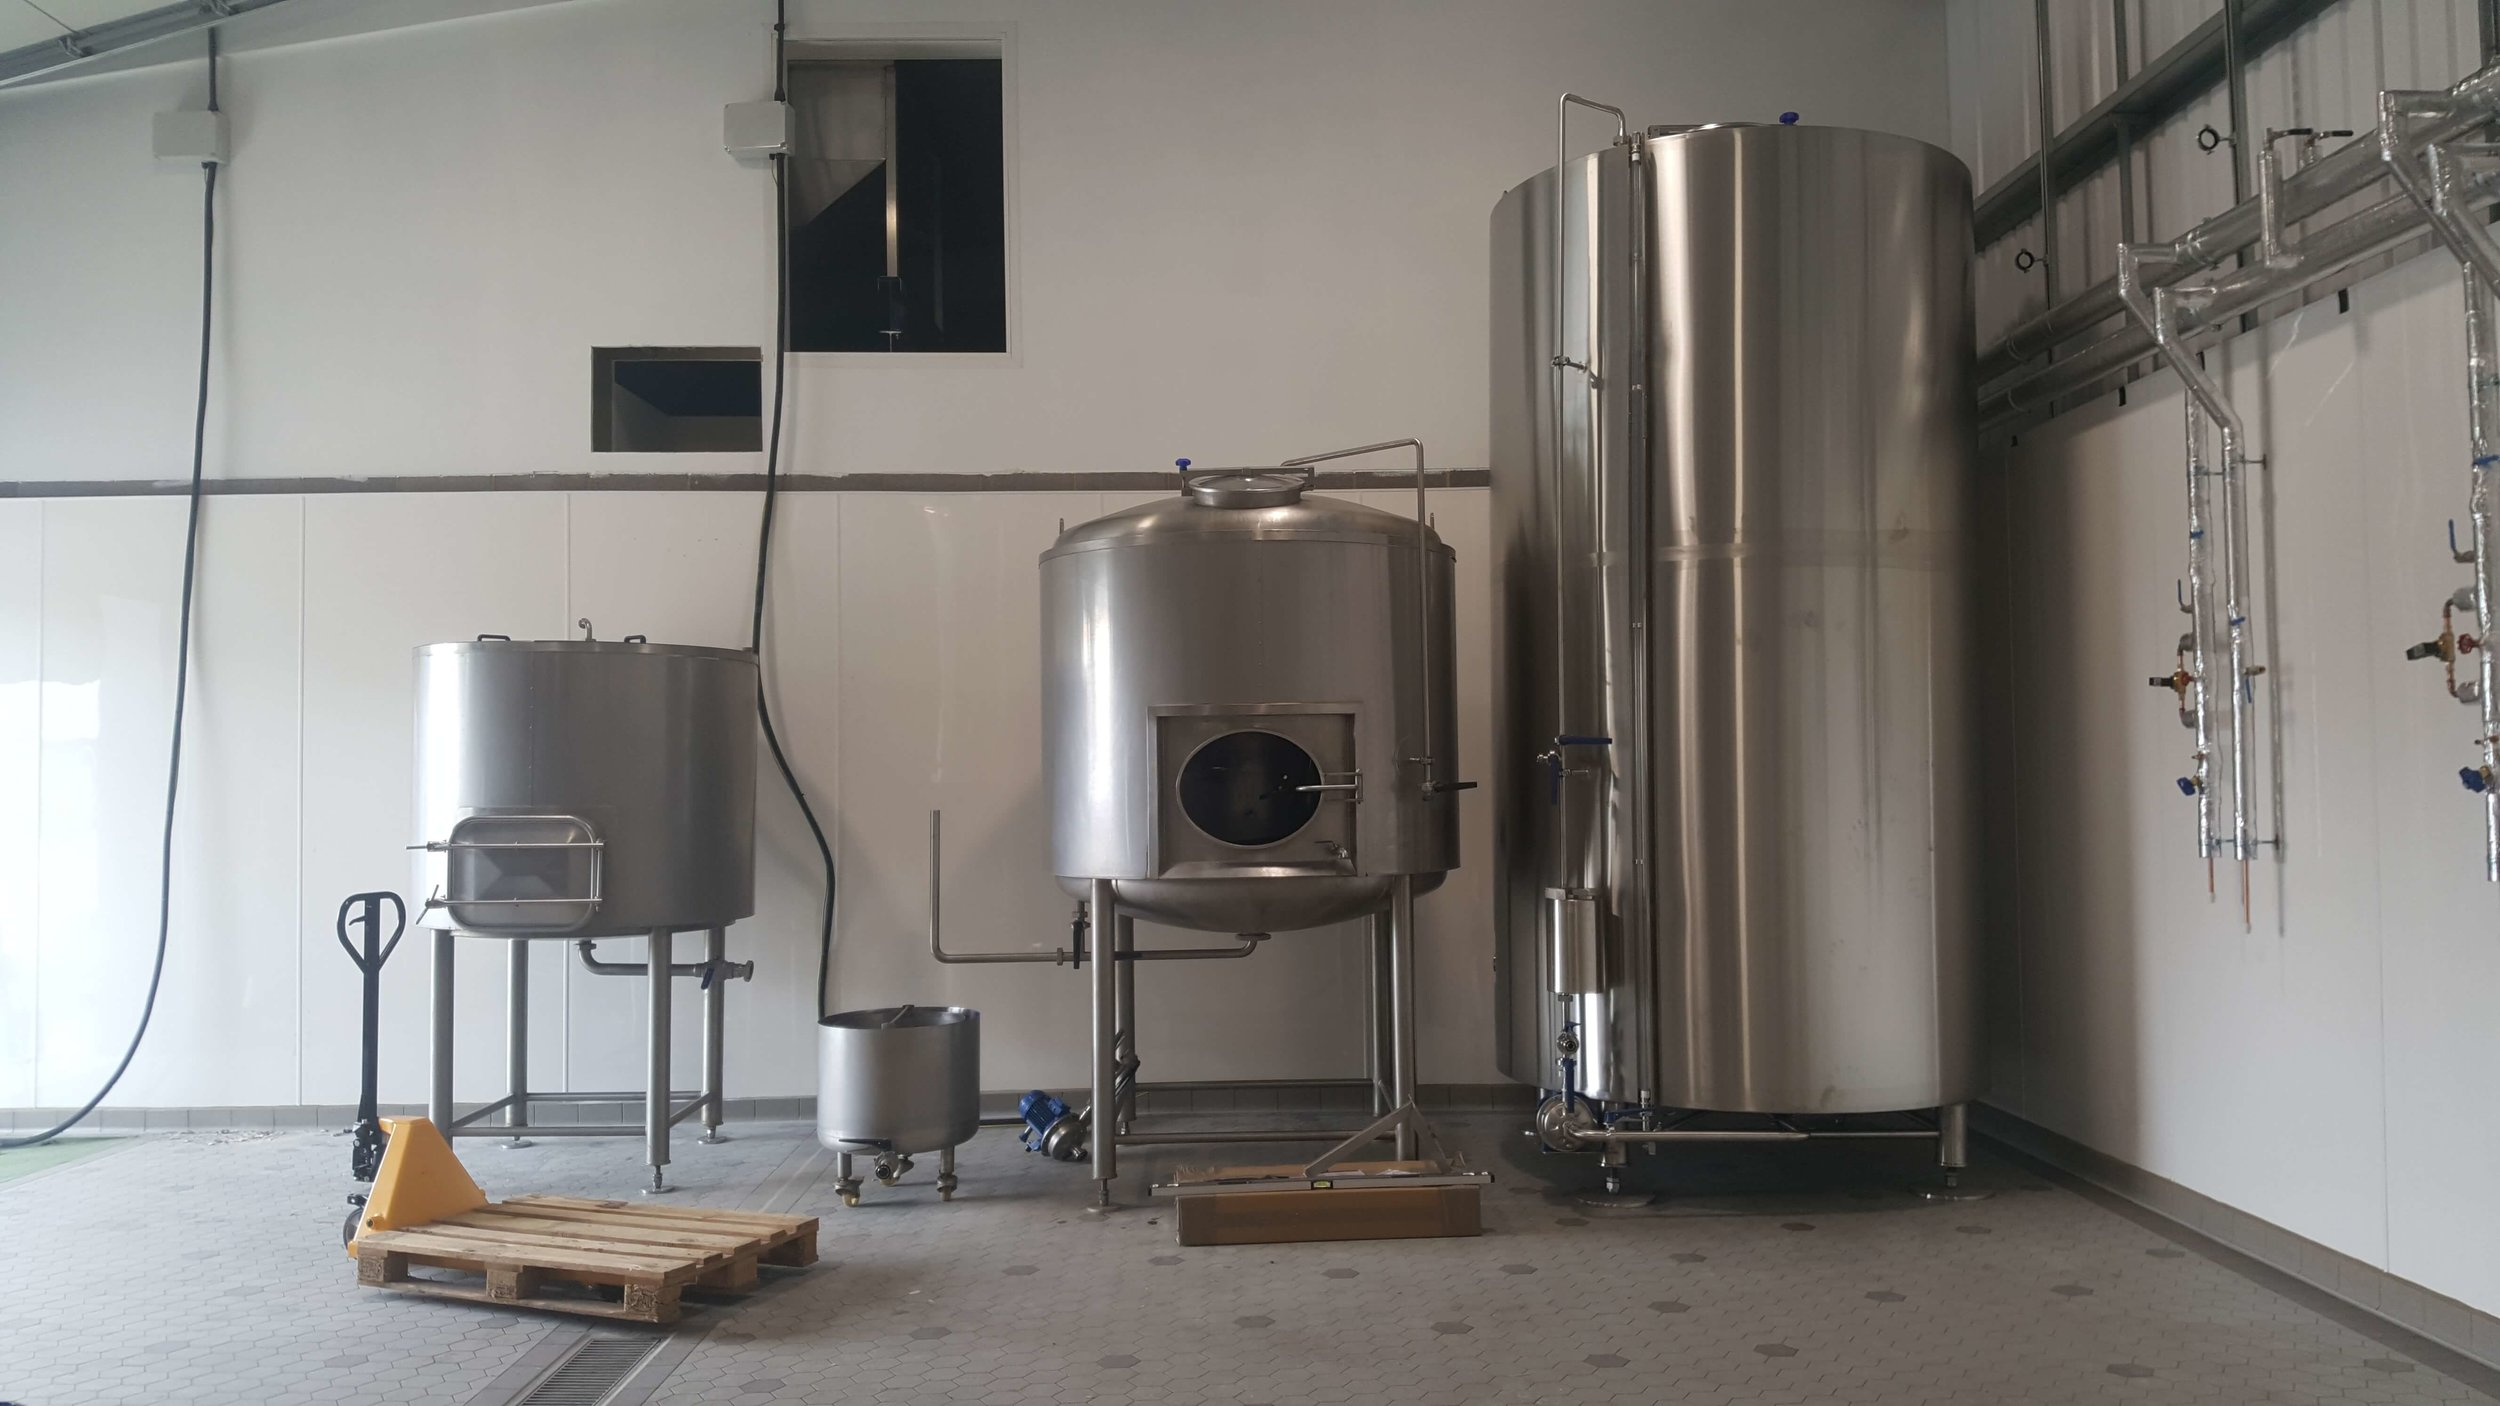 - mash tun, copper and hot liquor tank are in position